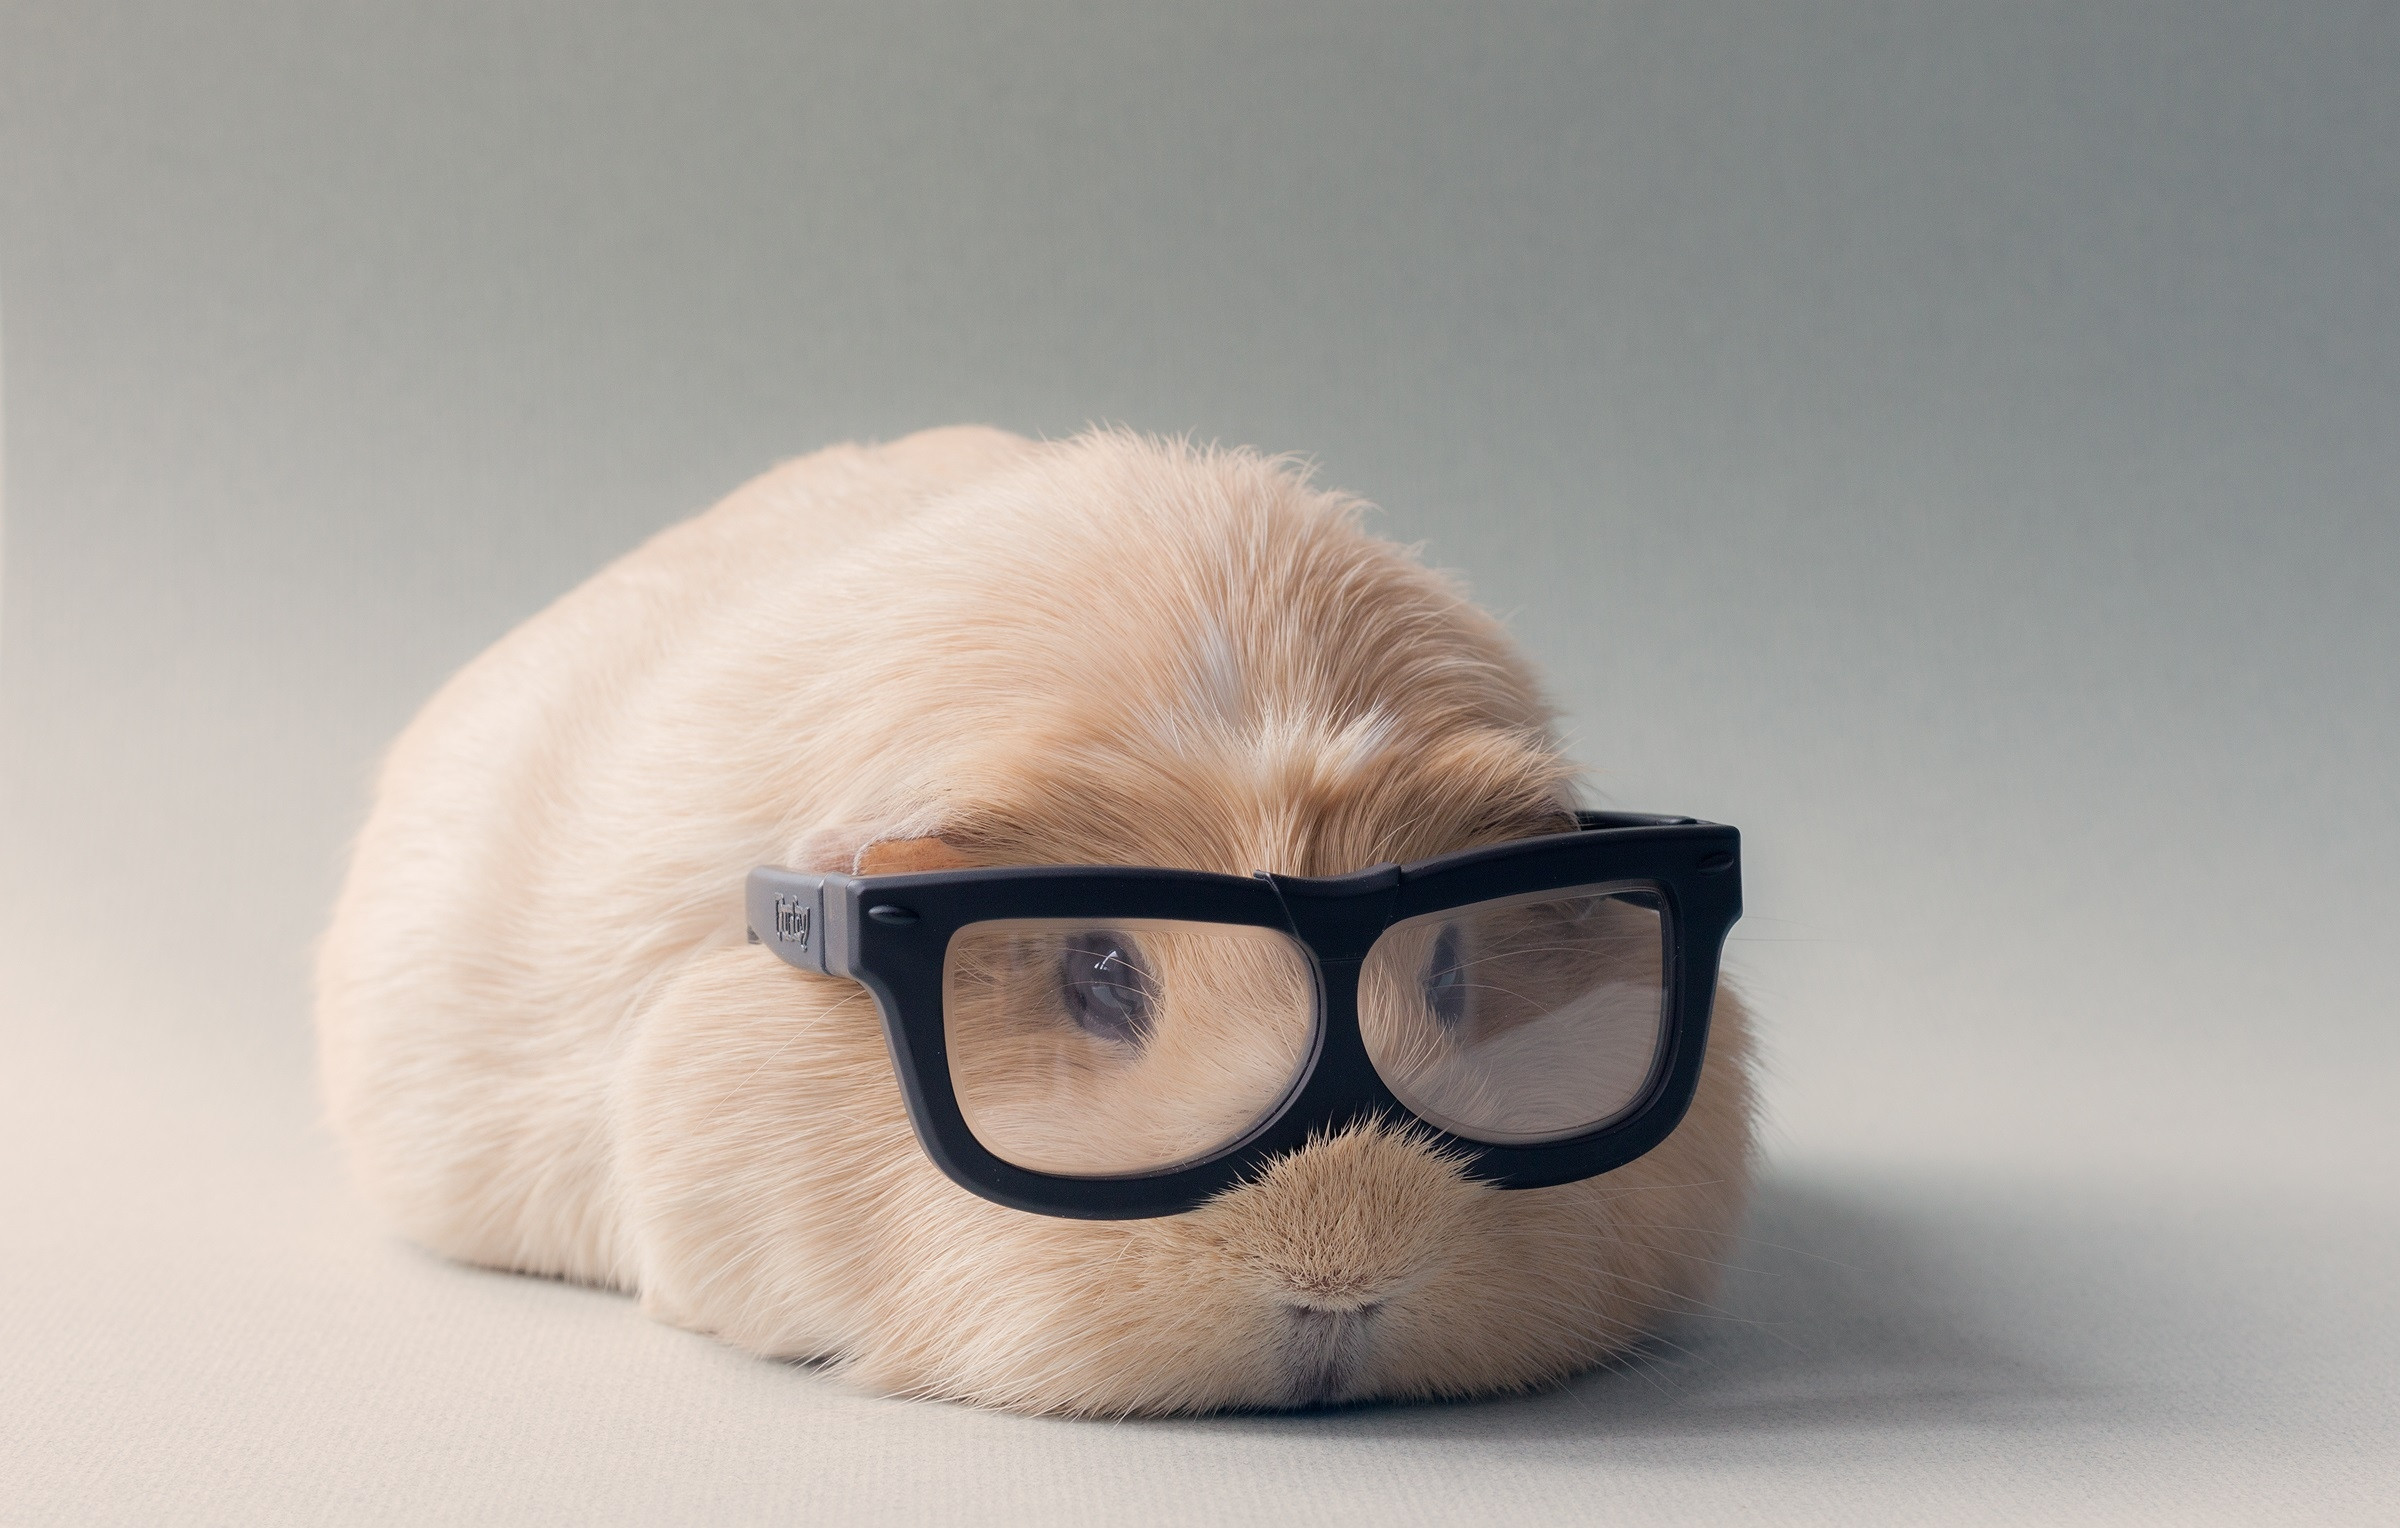 Links Guinea Pig with glasses